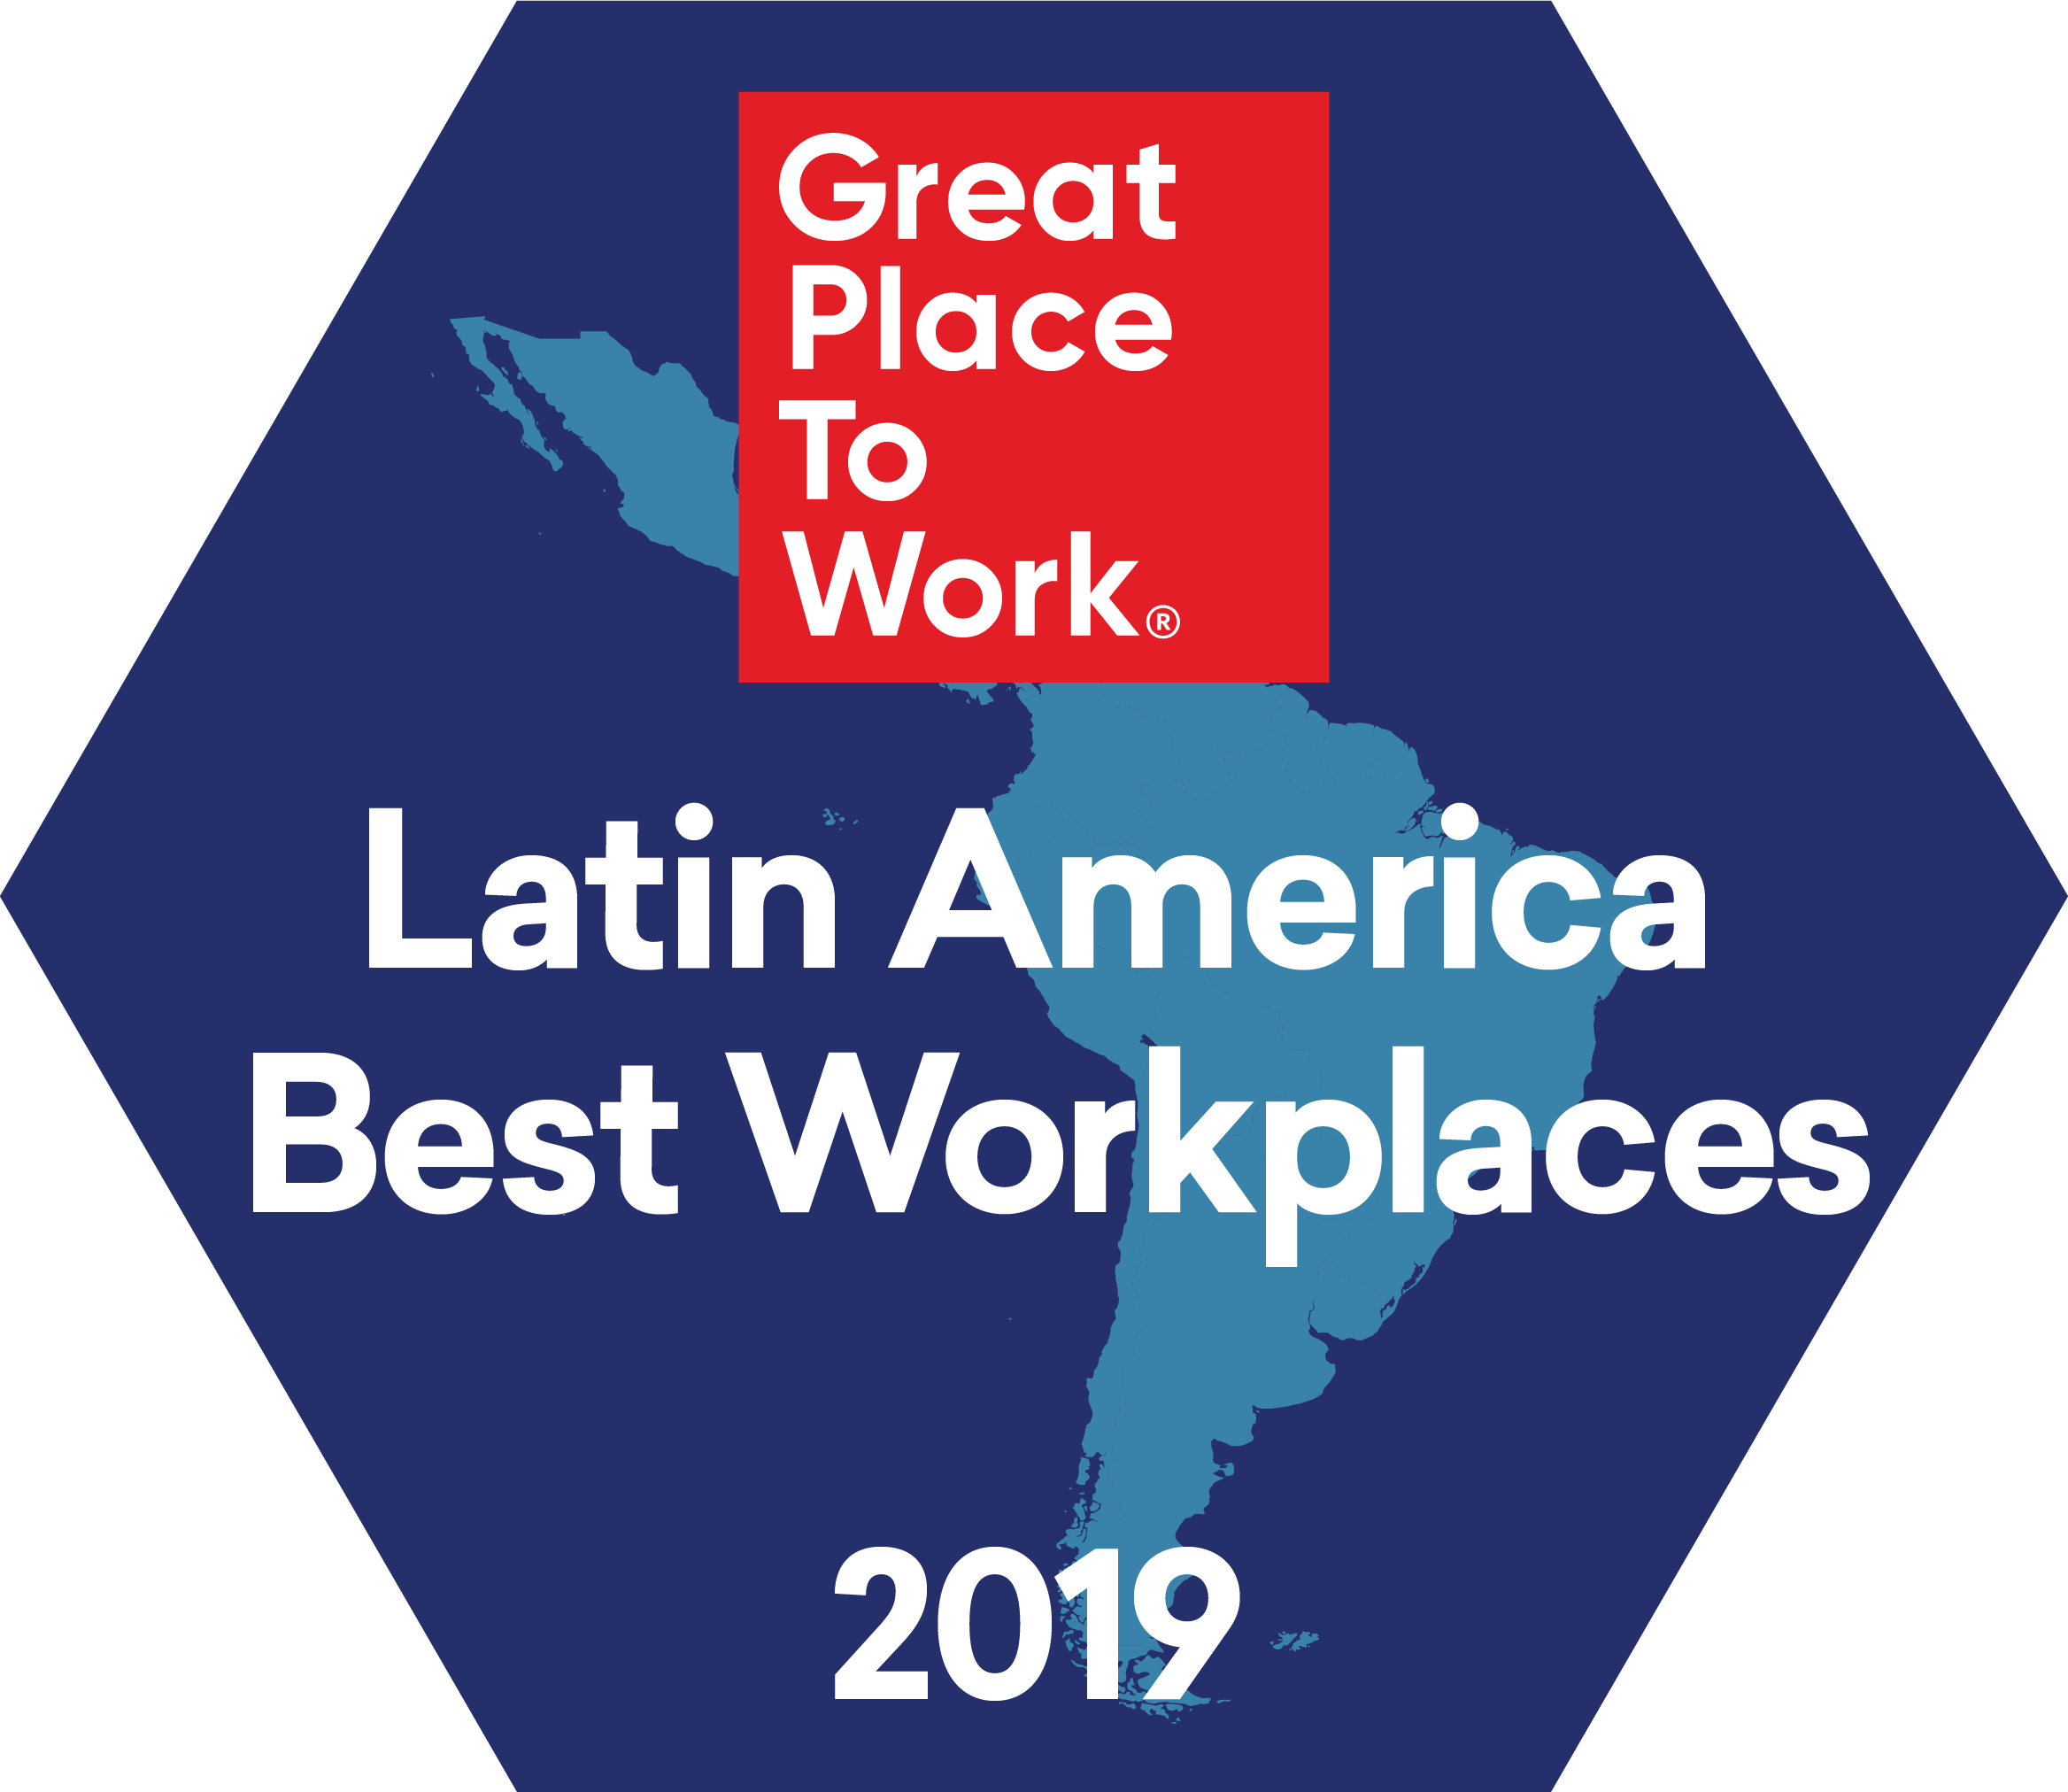 Latin America Best Workplaces